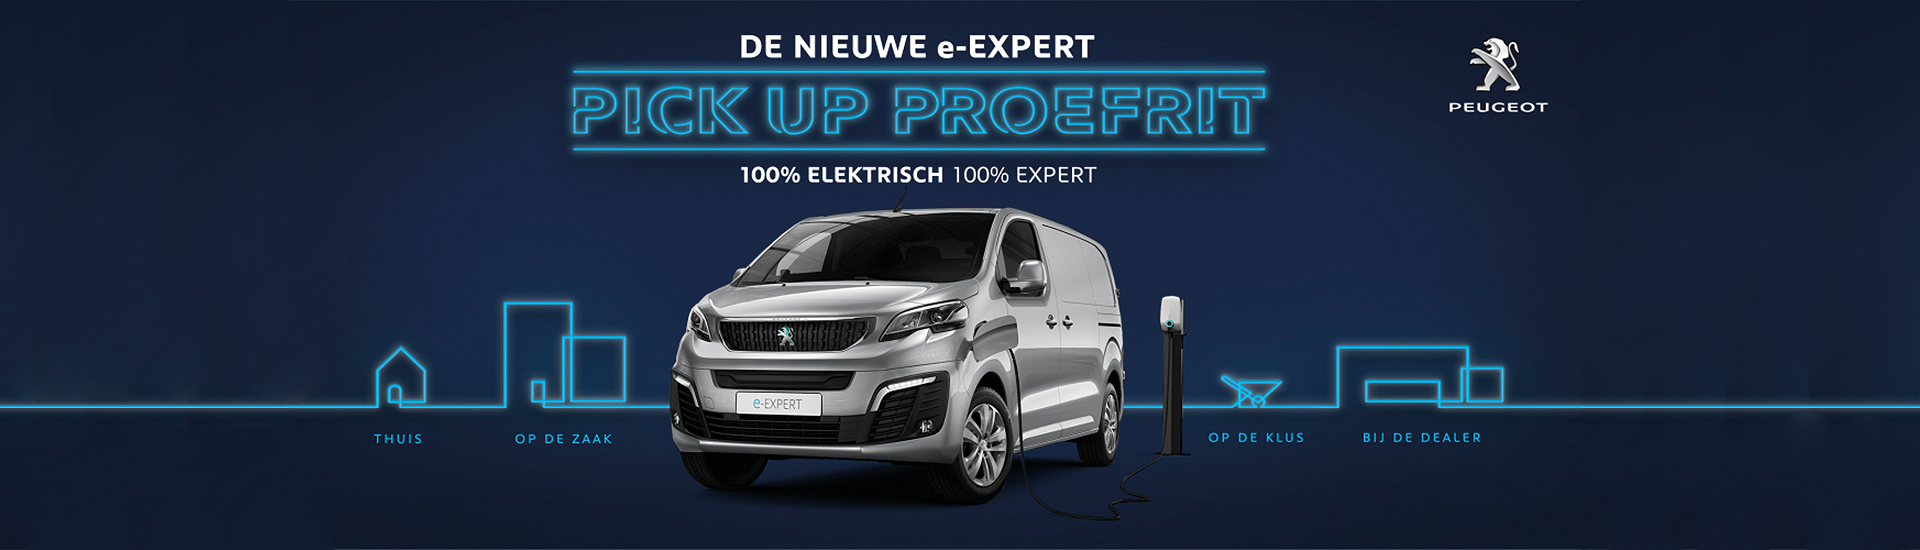 Header home Peugeot Pick Up Proefrit e-Expert